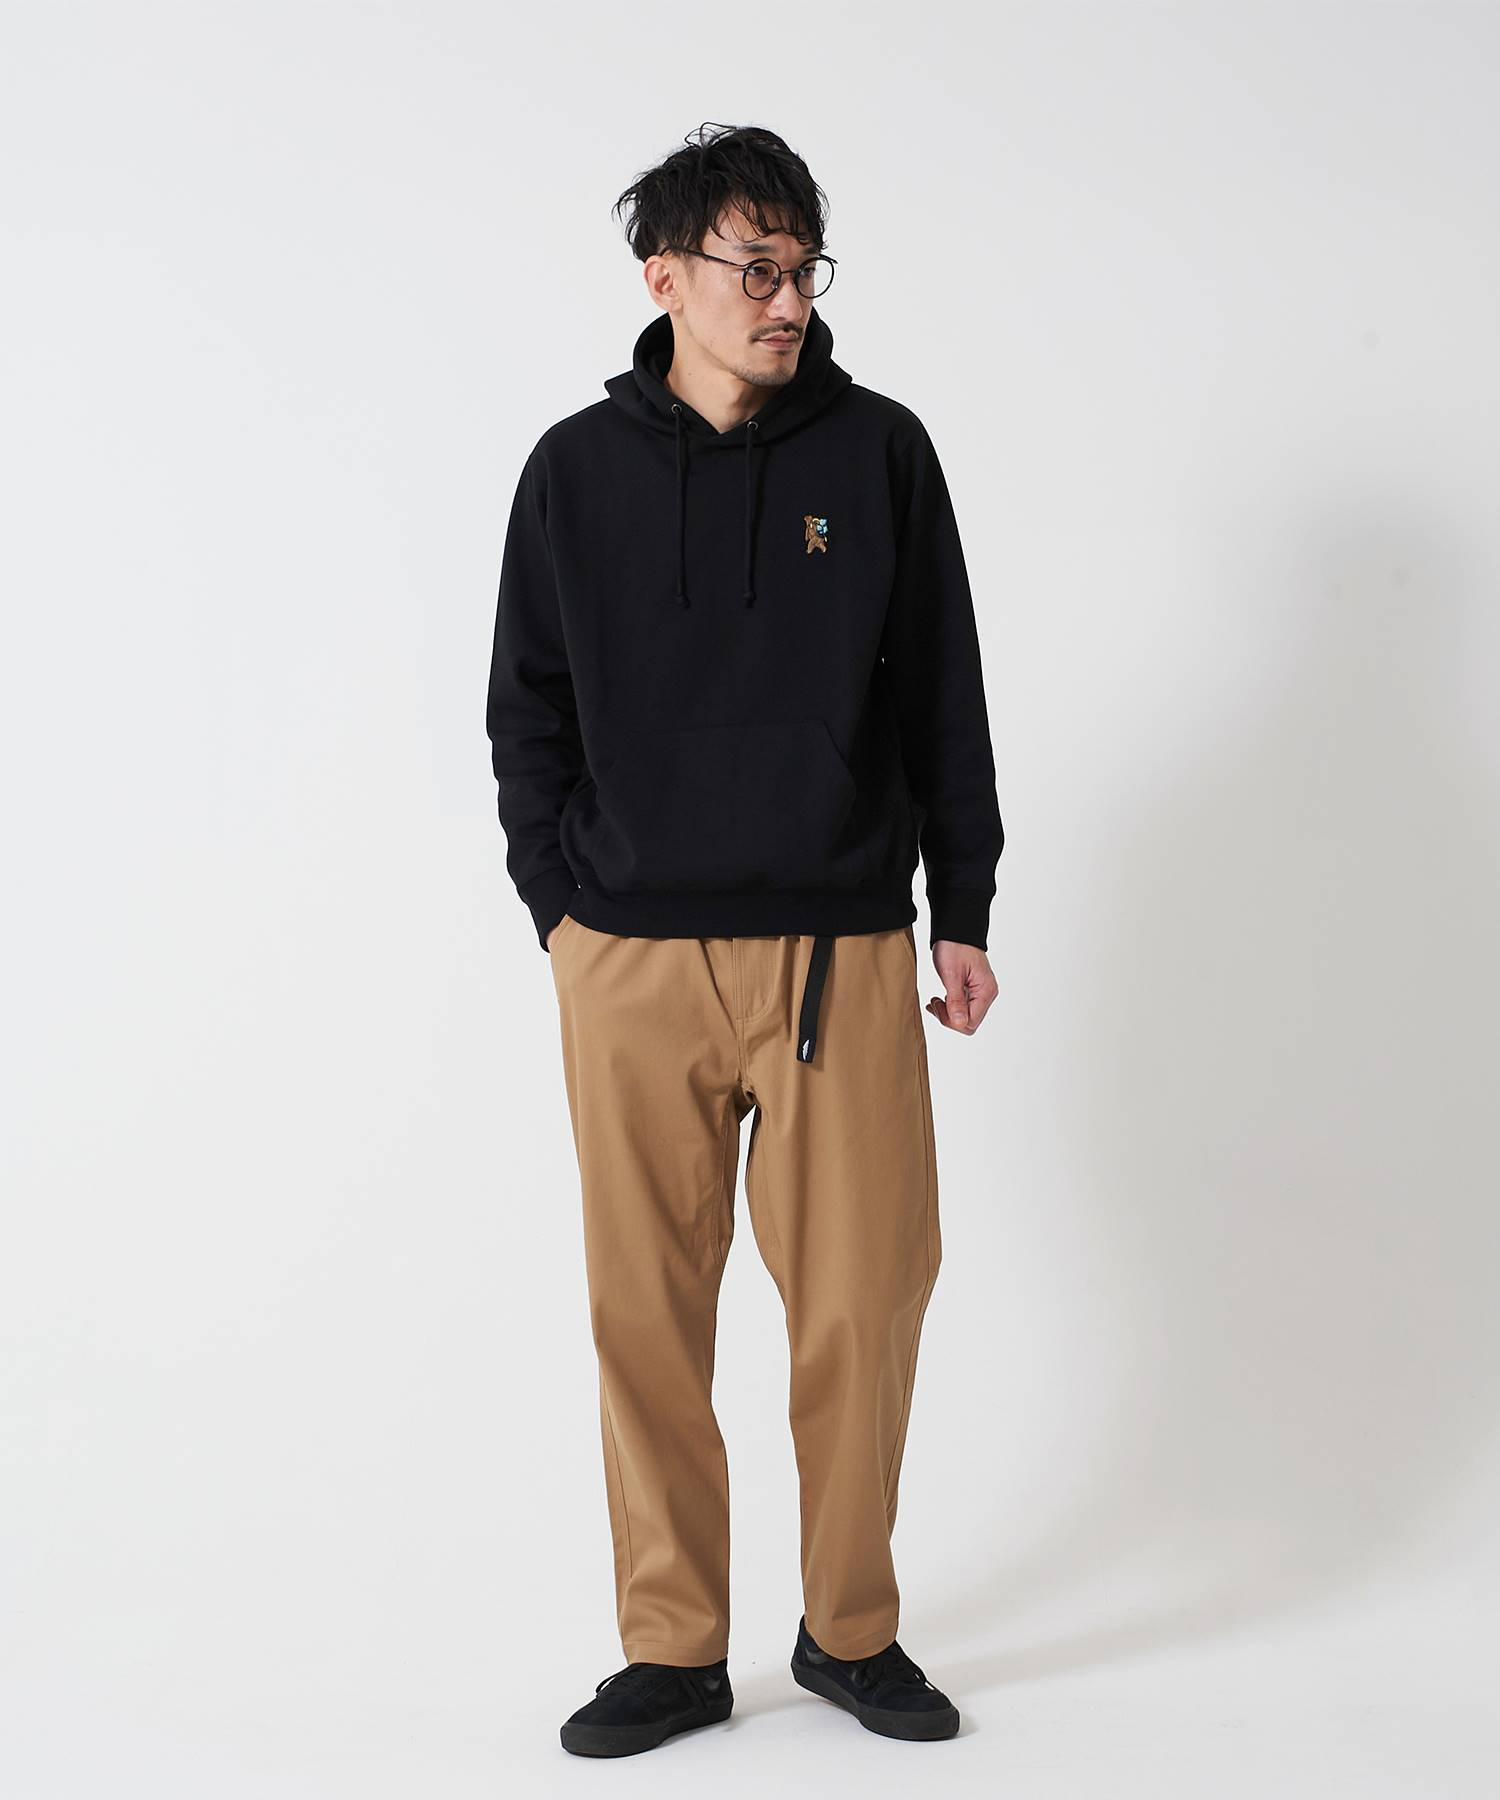 OUTDOOR PRODUCTS APPAREL  防シワポンチ刺繍プルパーカー